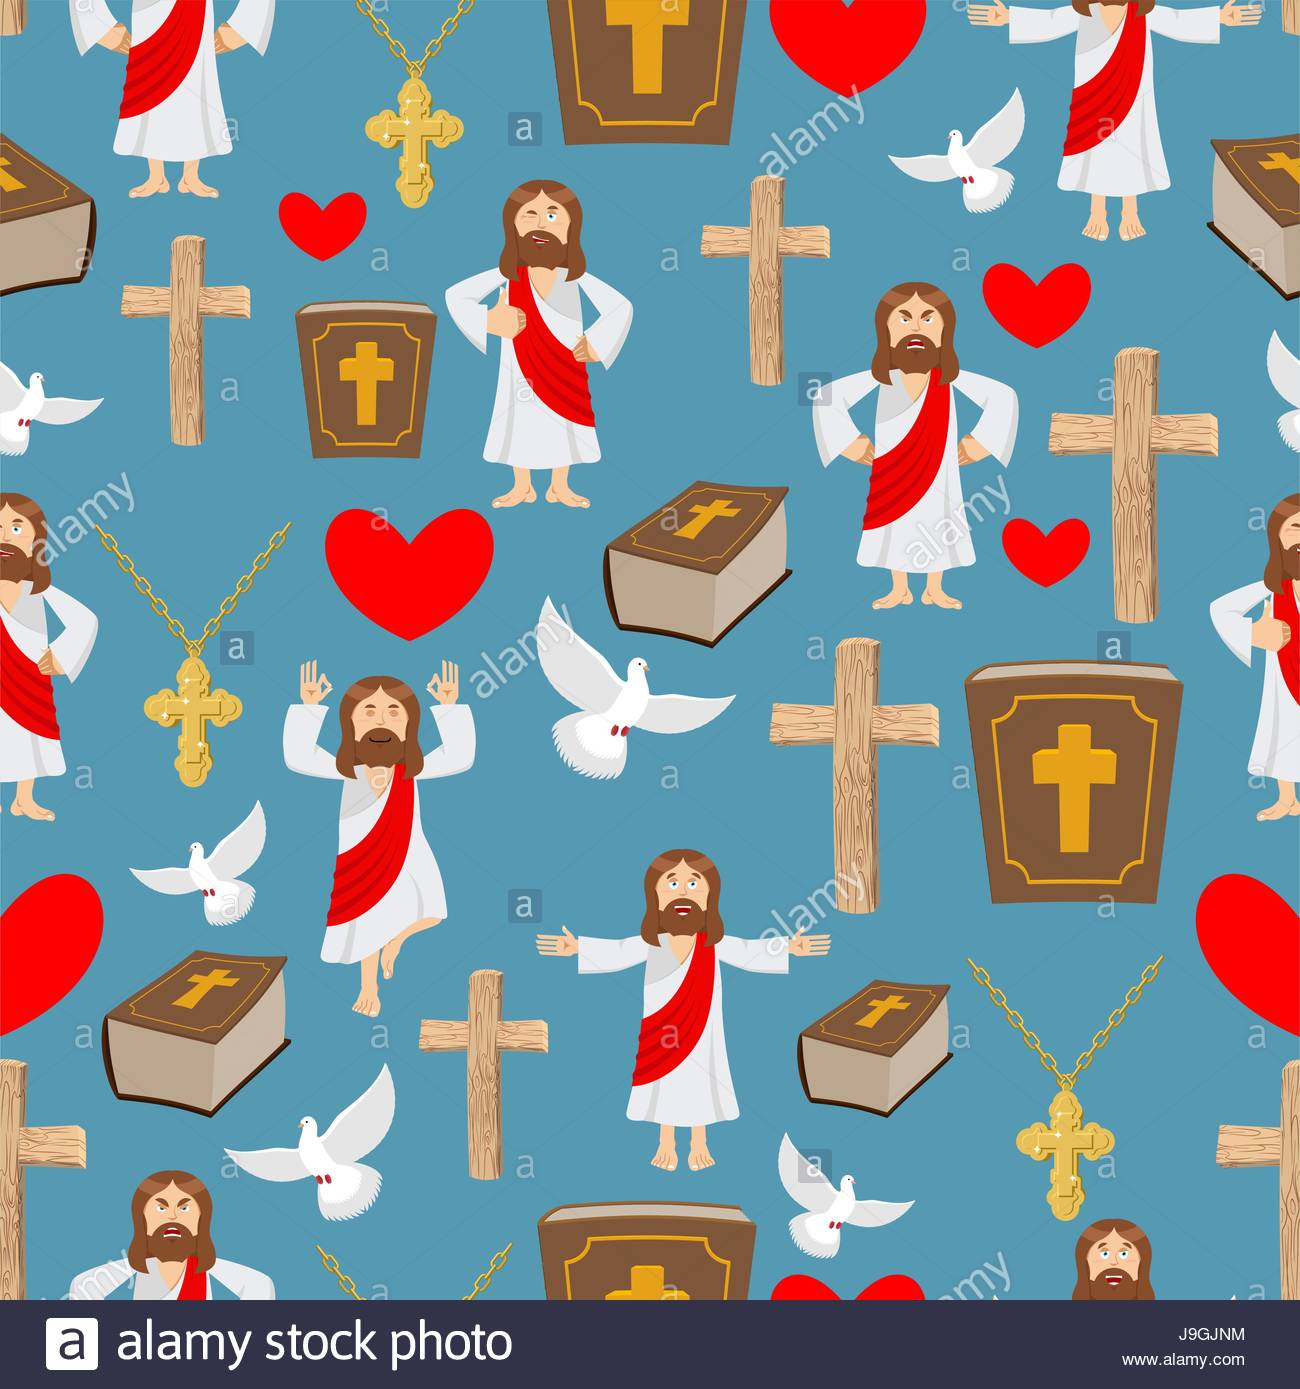 Biblical Seamless Pattern Jesus And Bible Cross And White Dove